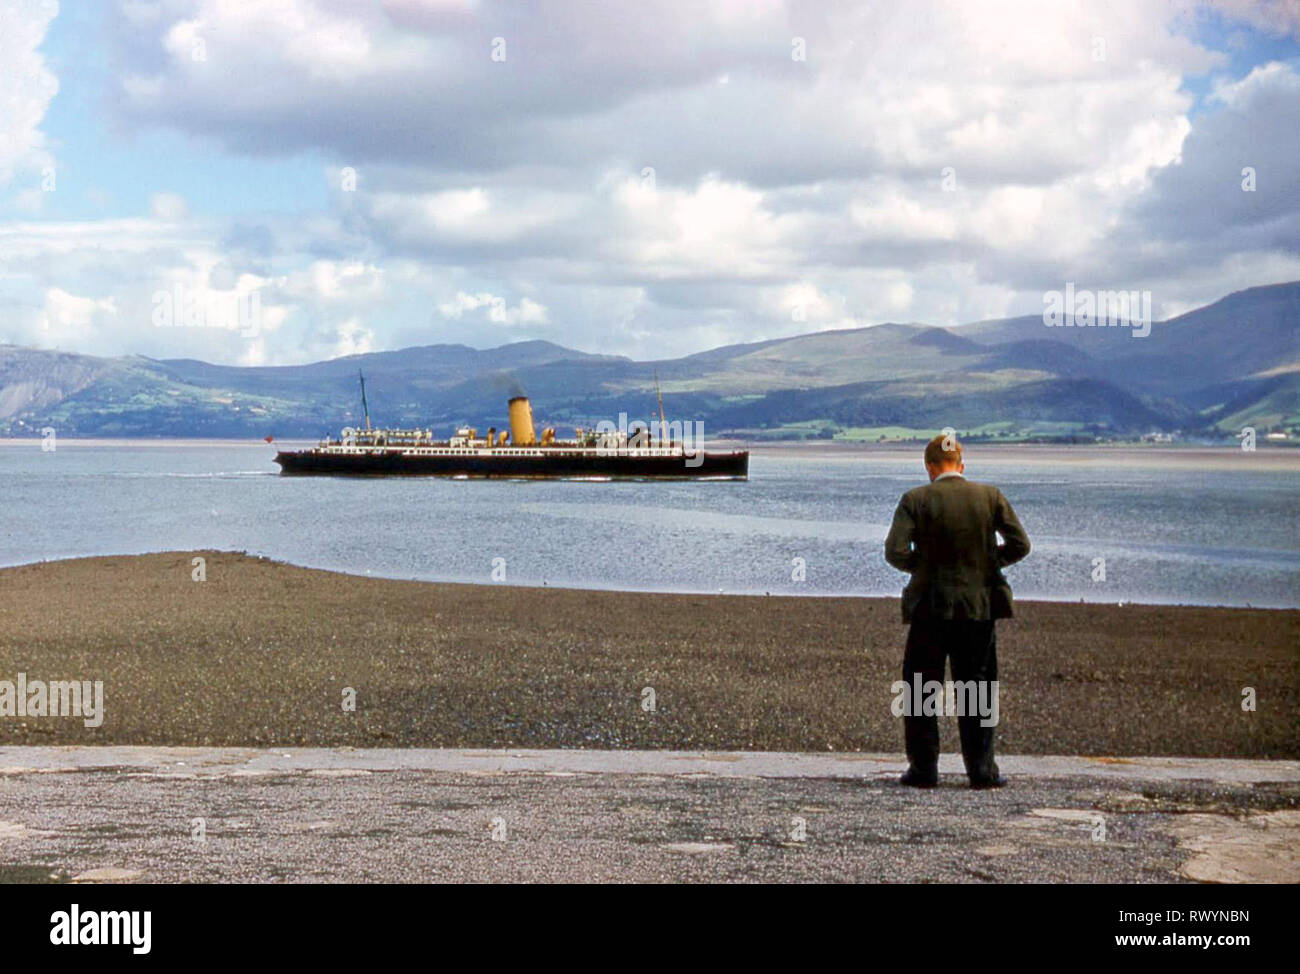 Young man taking photos waist level camera historical 1960s 60s archival view passenger ship St Tudno in Menai Straits landscape passing Beaumaris UK Stock Photo